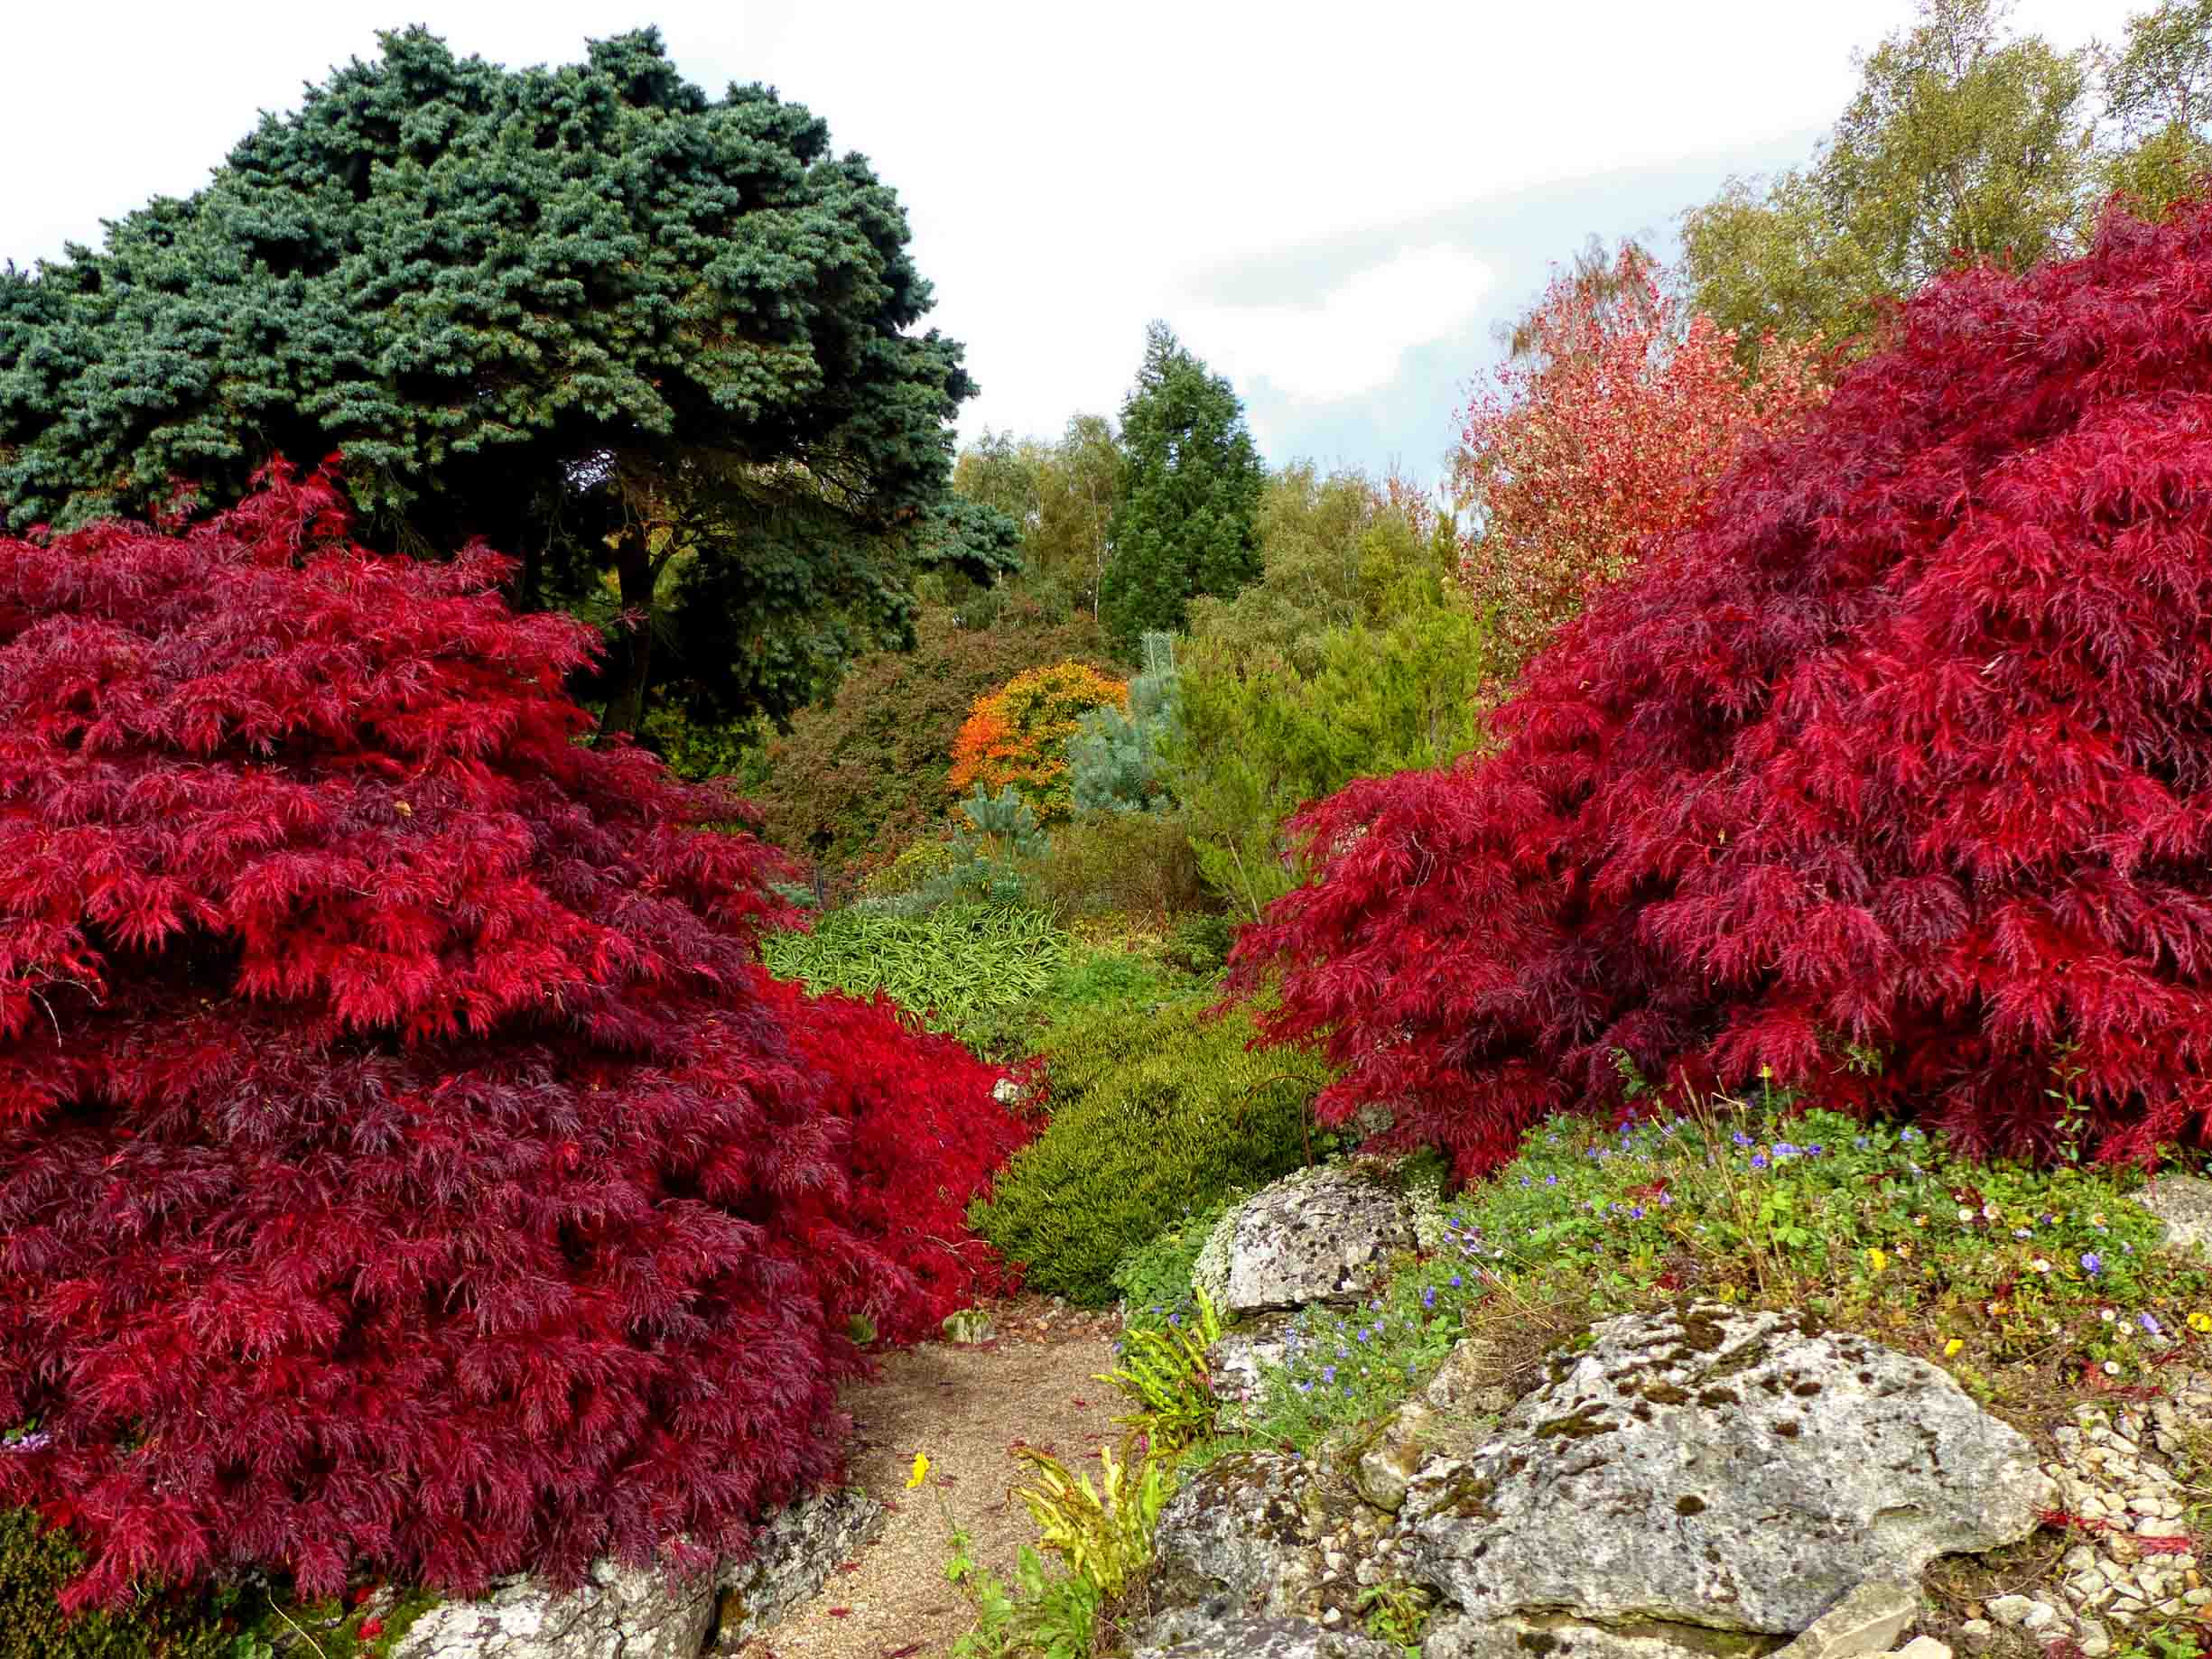 Path between red acers and other trees